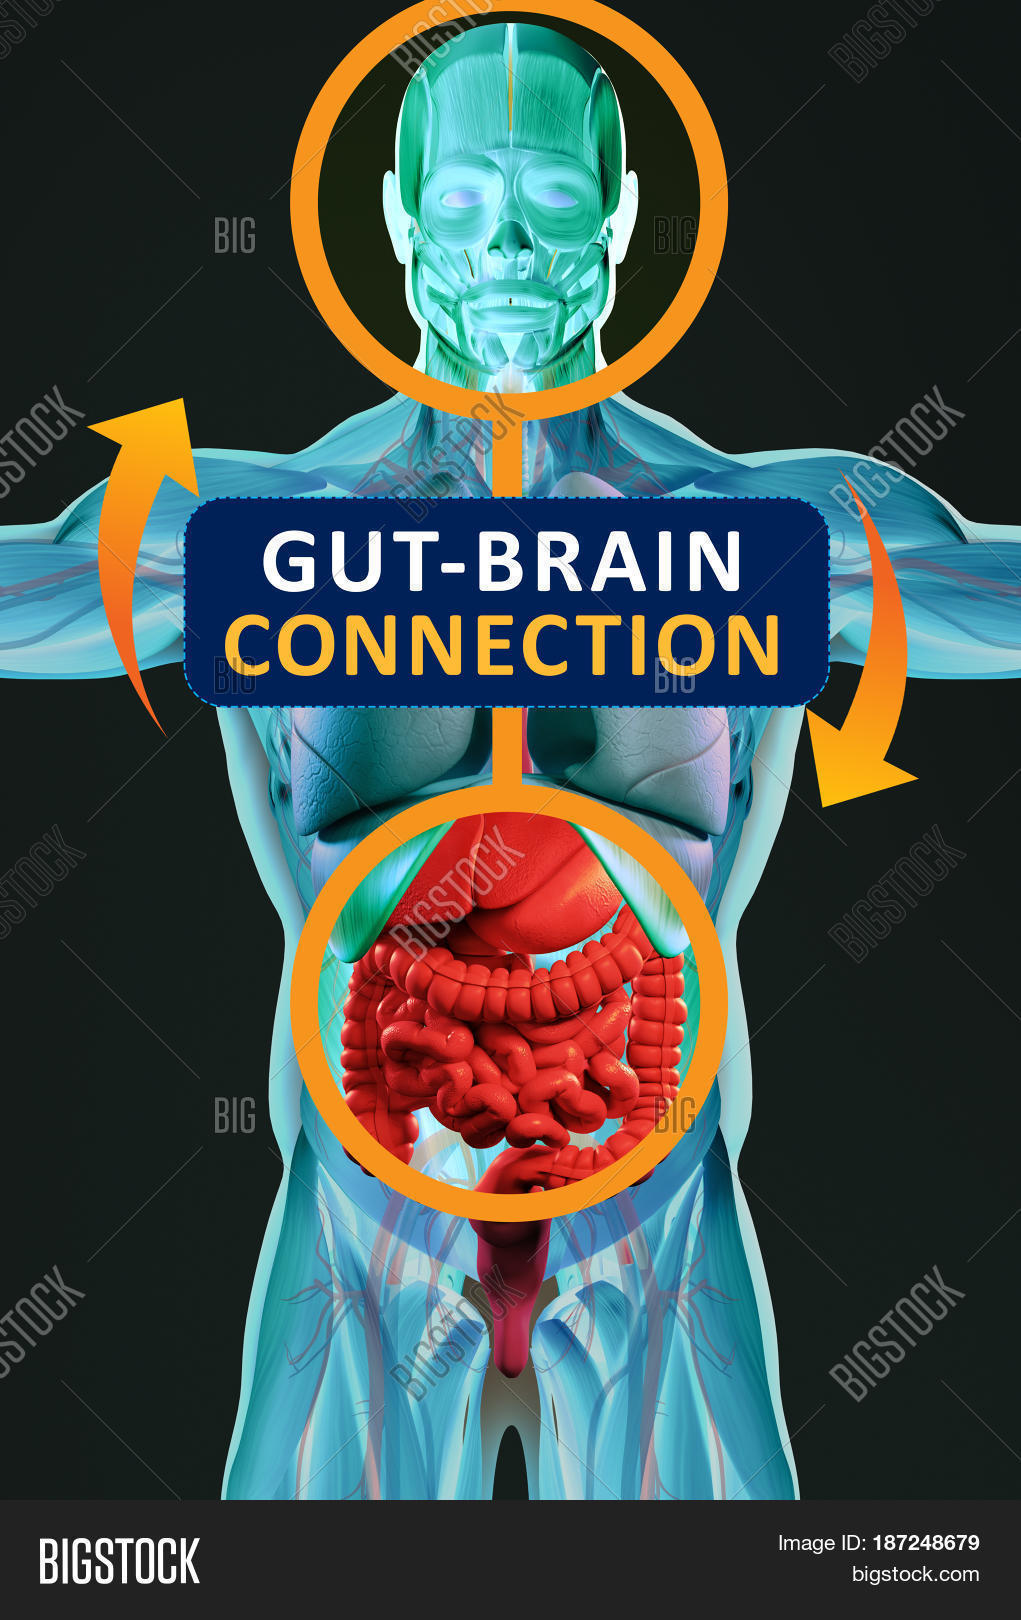 Gut Brain Connection >> Gut Brain Connection Image Photo Free Trial Bigstock